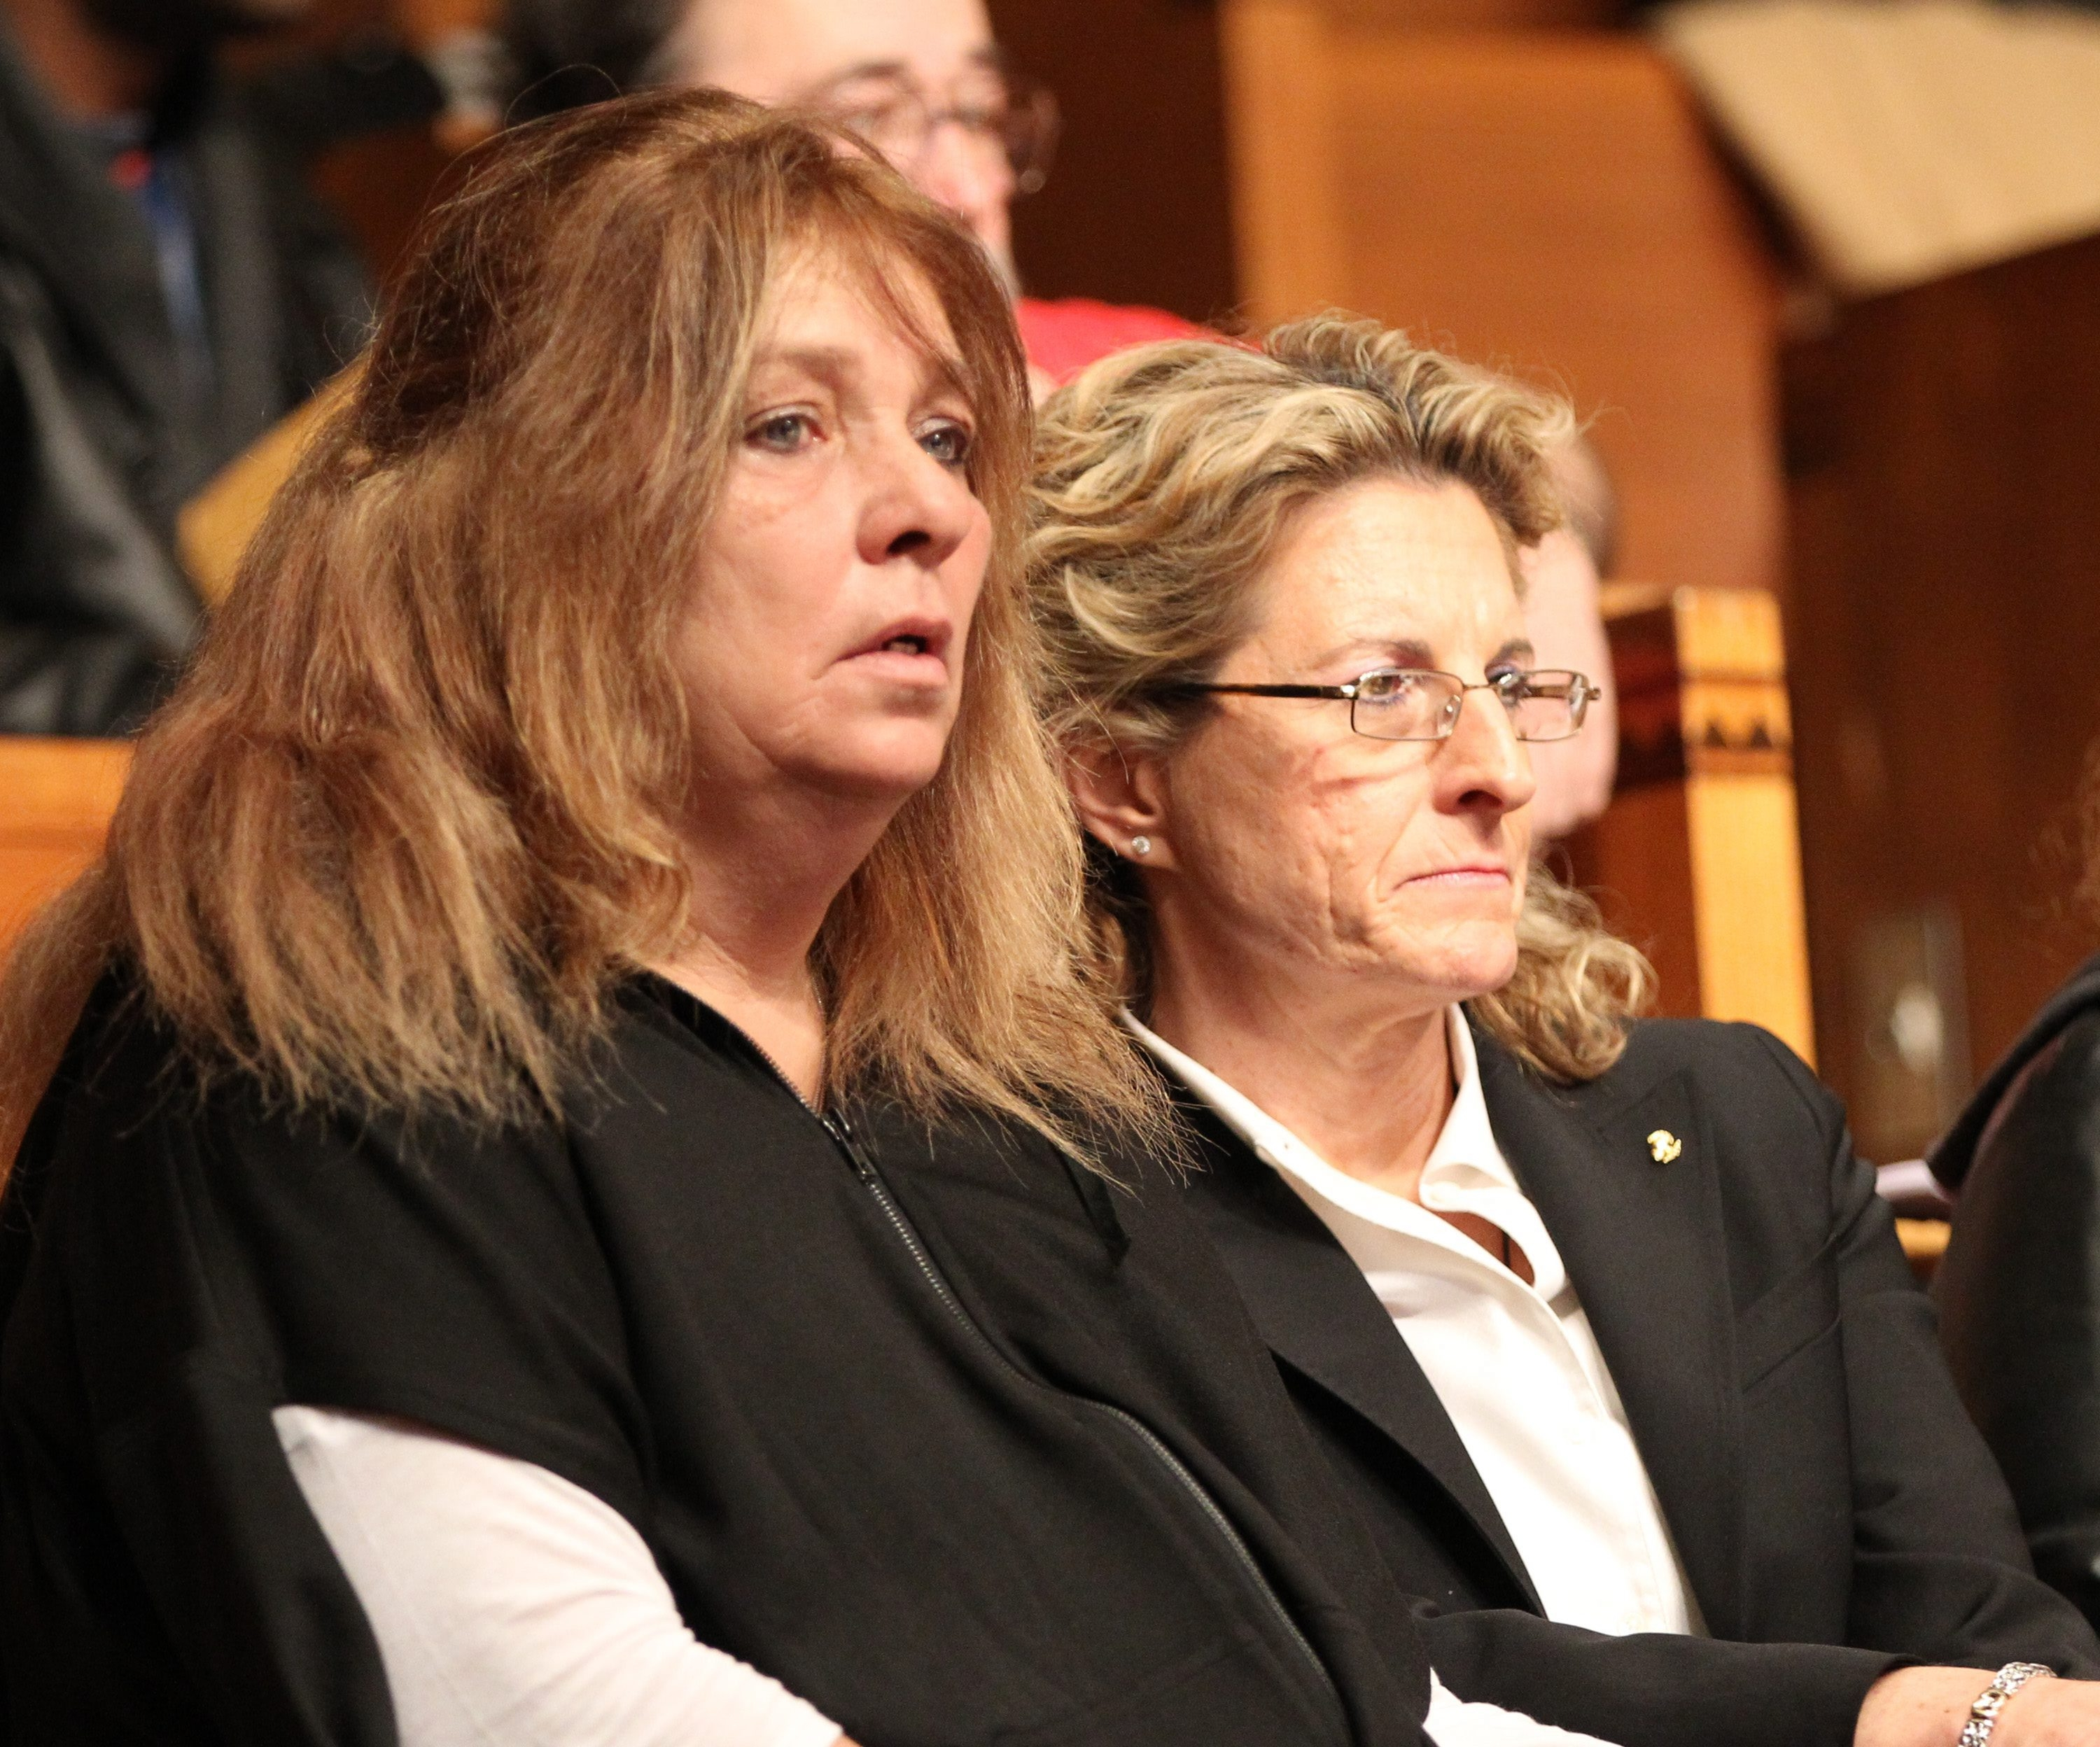 Leslie Brill, left, Amanda Wienckowski's mother, attends a special Common Council meeting about her daughter's death, held in City Hall on Jan. 29, 2013. (News file photo)